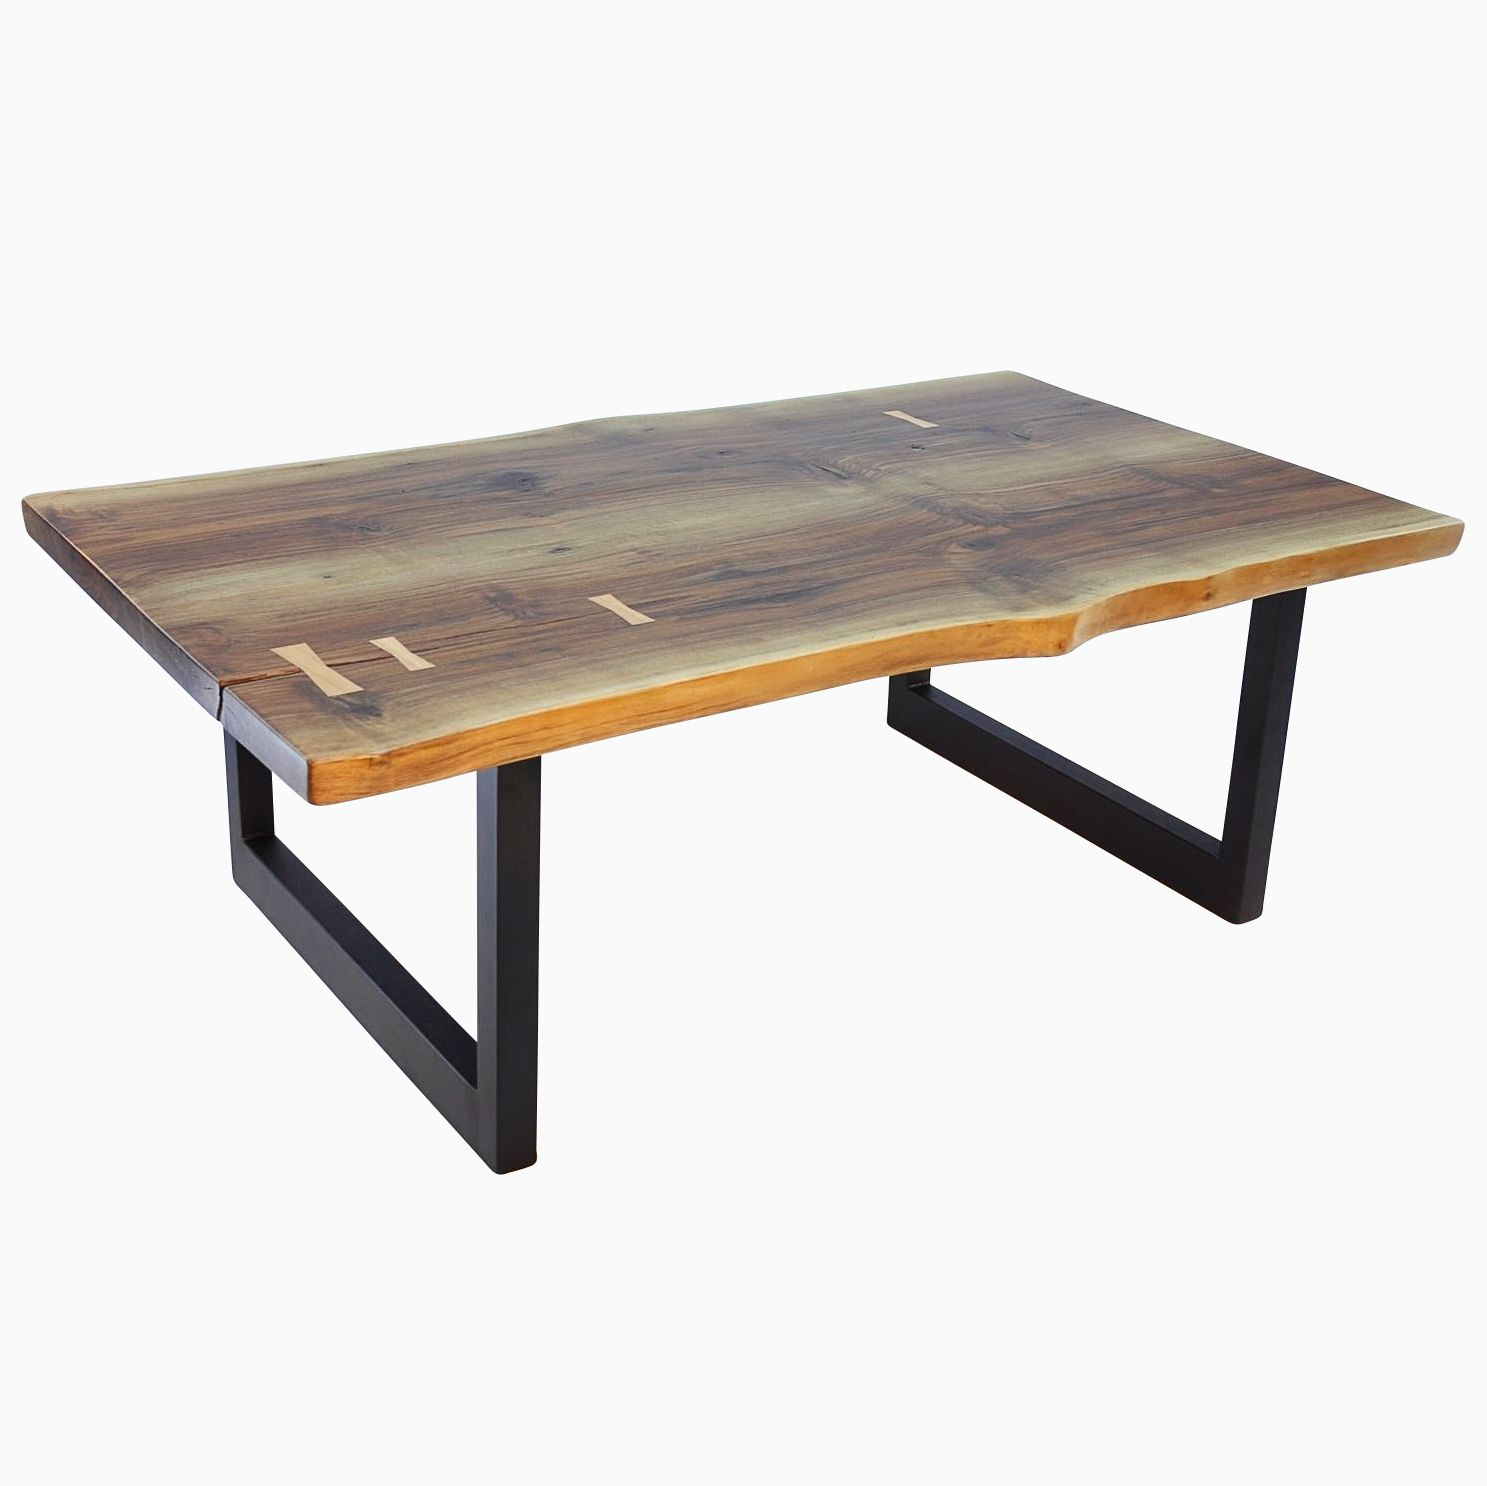 Vintage Industrial Live Edge Walnut Slab Coffee Table: Hand Crafted Walnut Slab With Maple Butterfly's Aurora